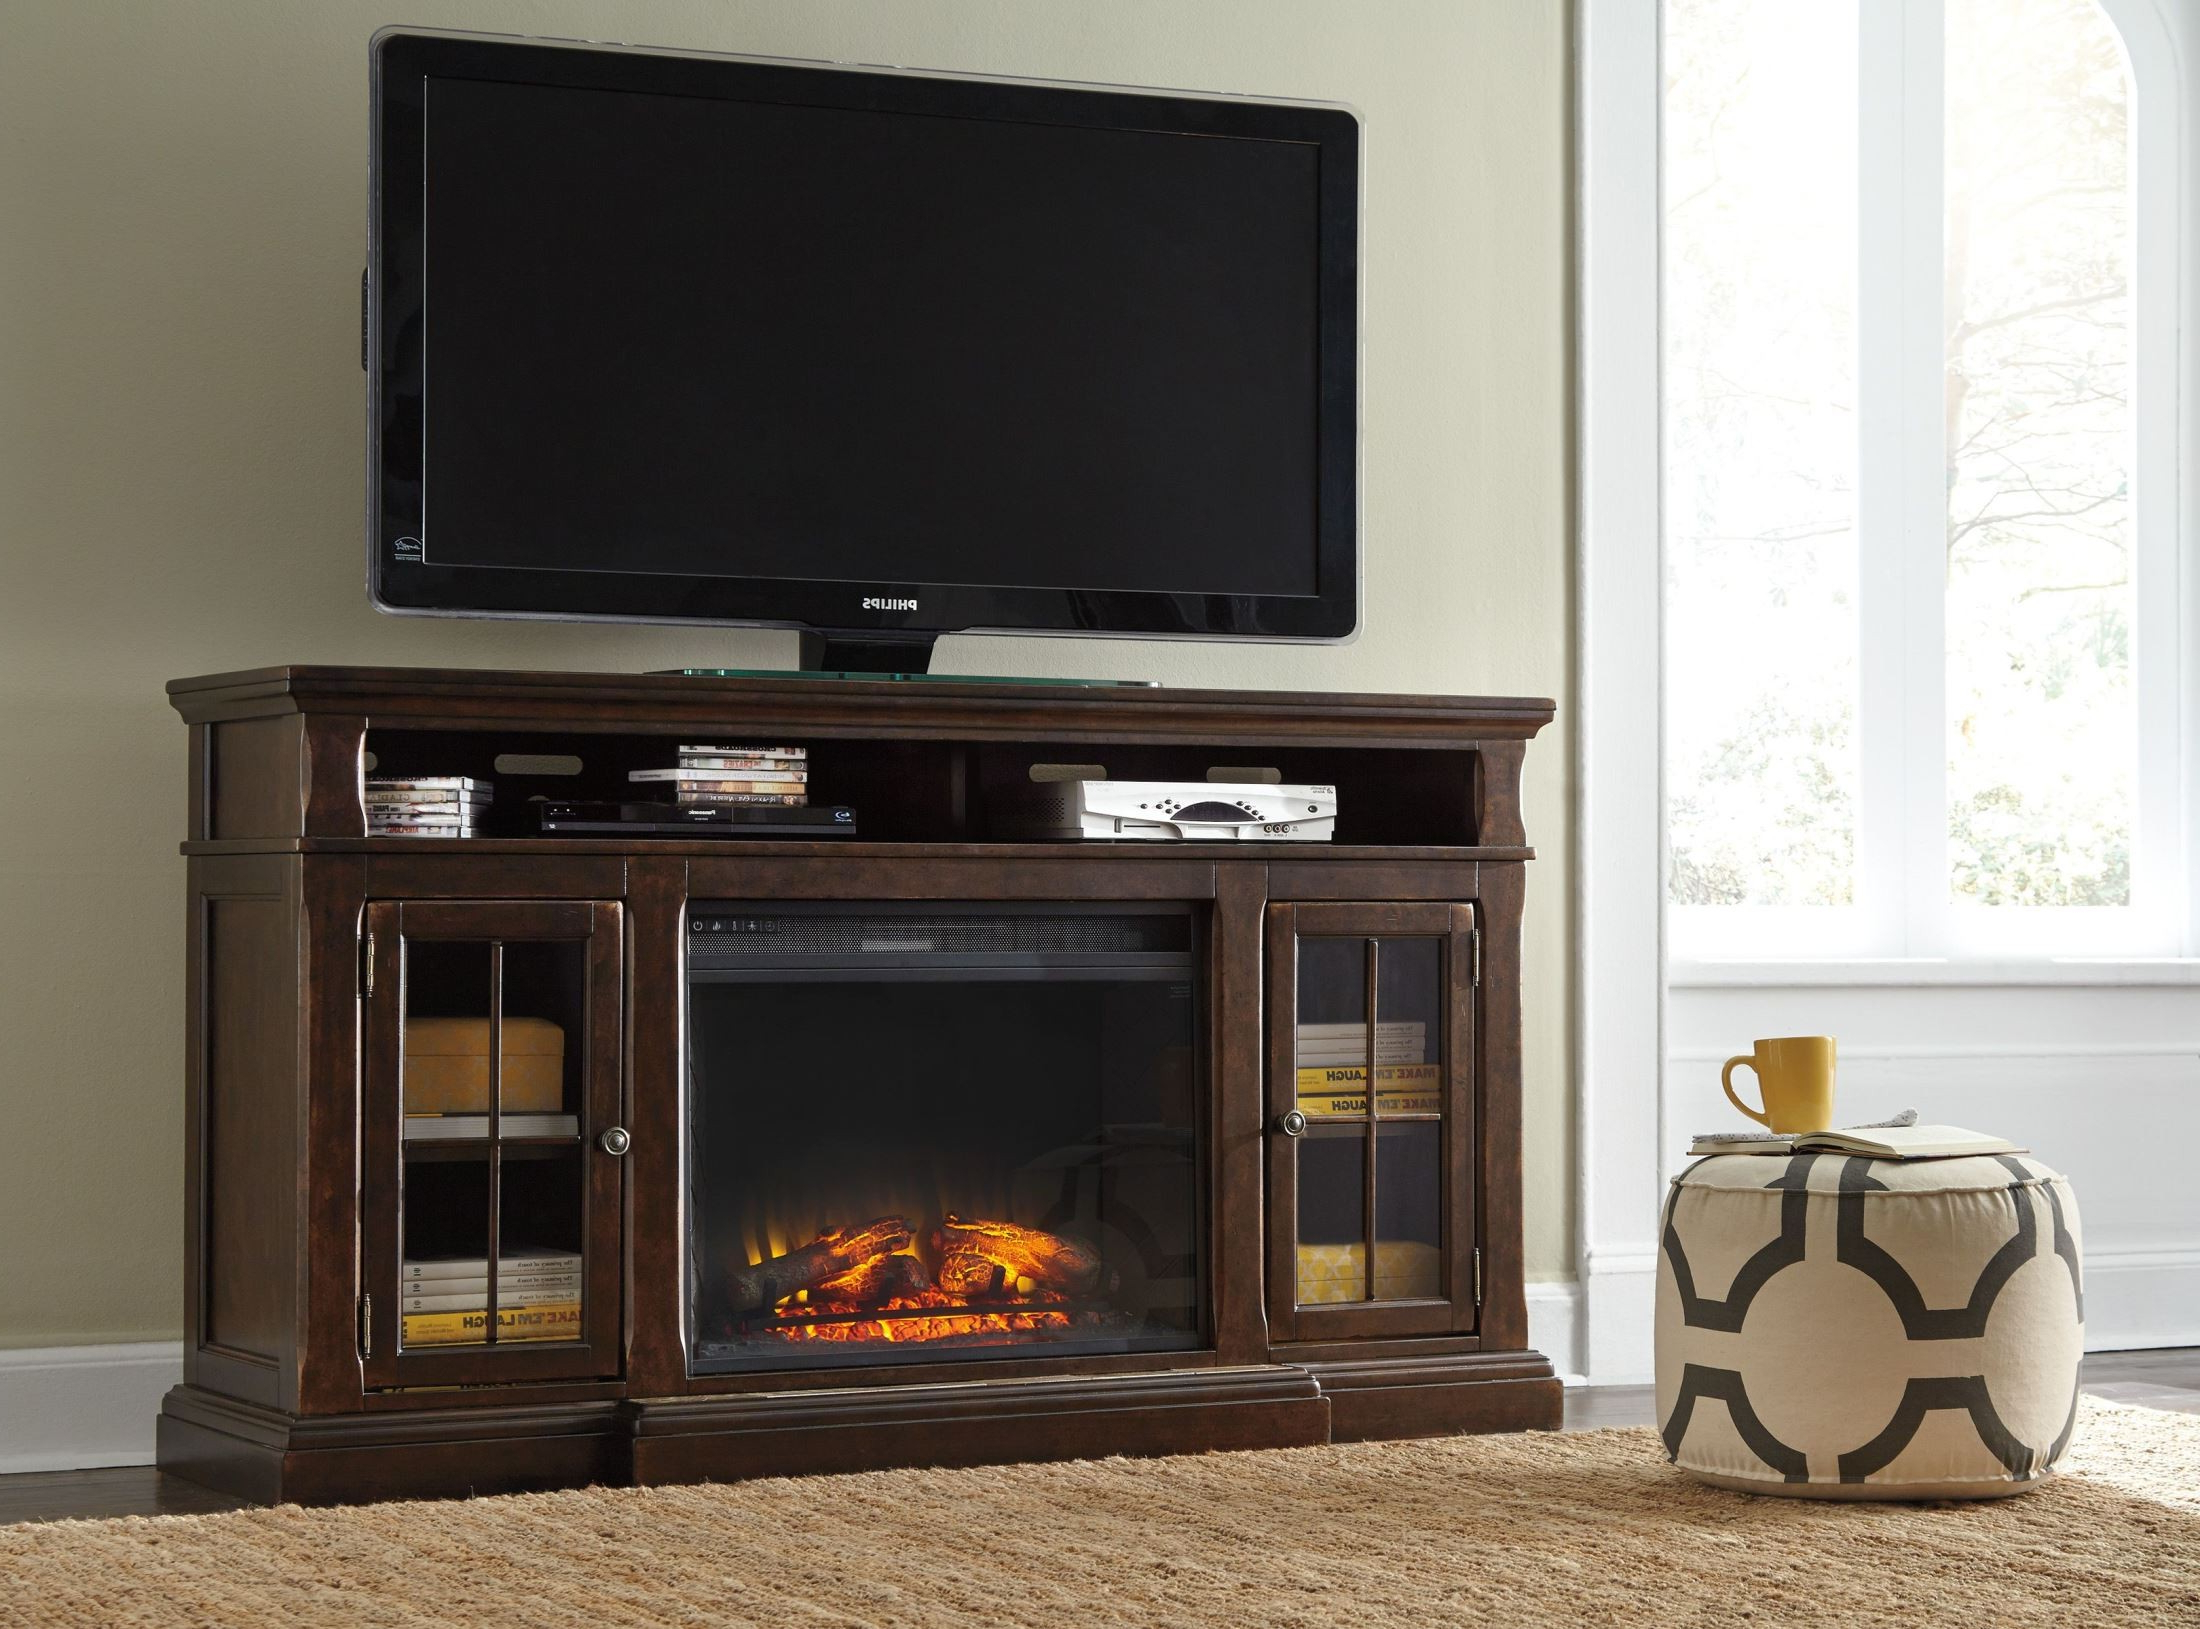 Roddinton Extra Large Tv Stand With Fireplace Insert, W701 For Large Tv Stands (View 12 of 15)